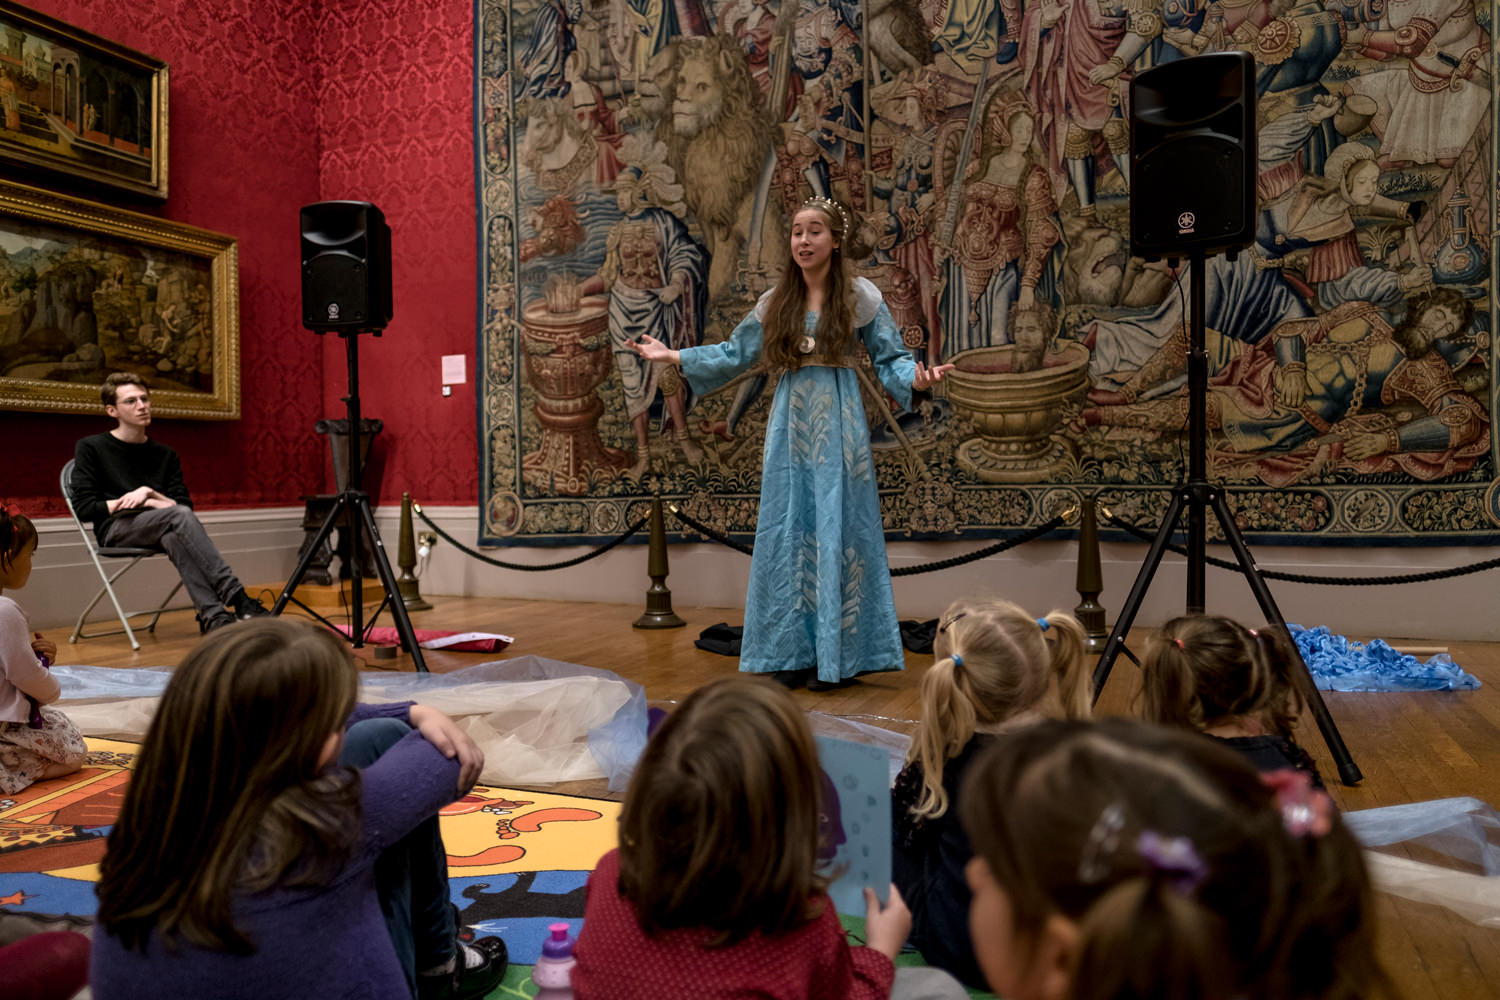 An actress in a long, blue, medieval-style dress standing in a gallery in front of a large, ancient tapestry. She's performing in front of an audience with some children sitting on the floor in front of her